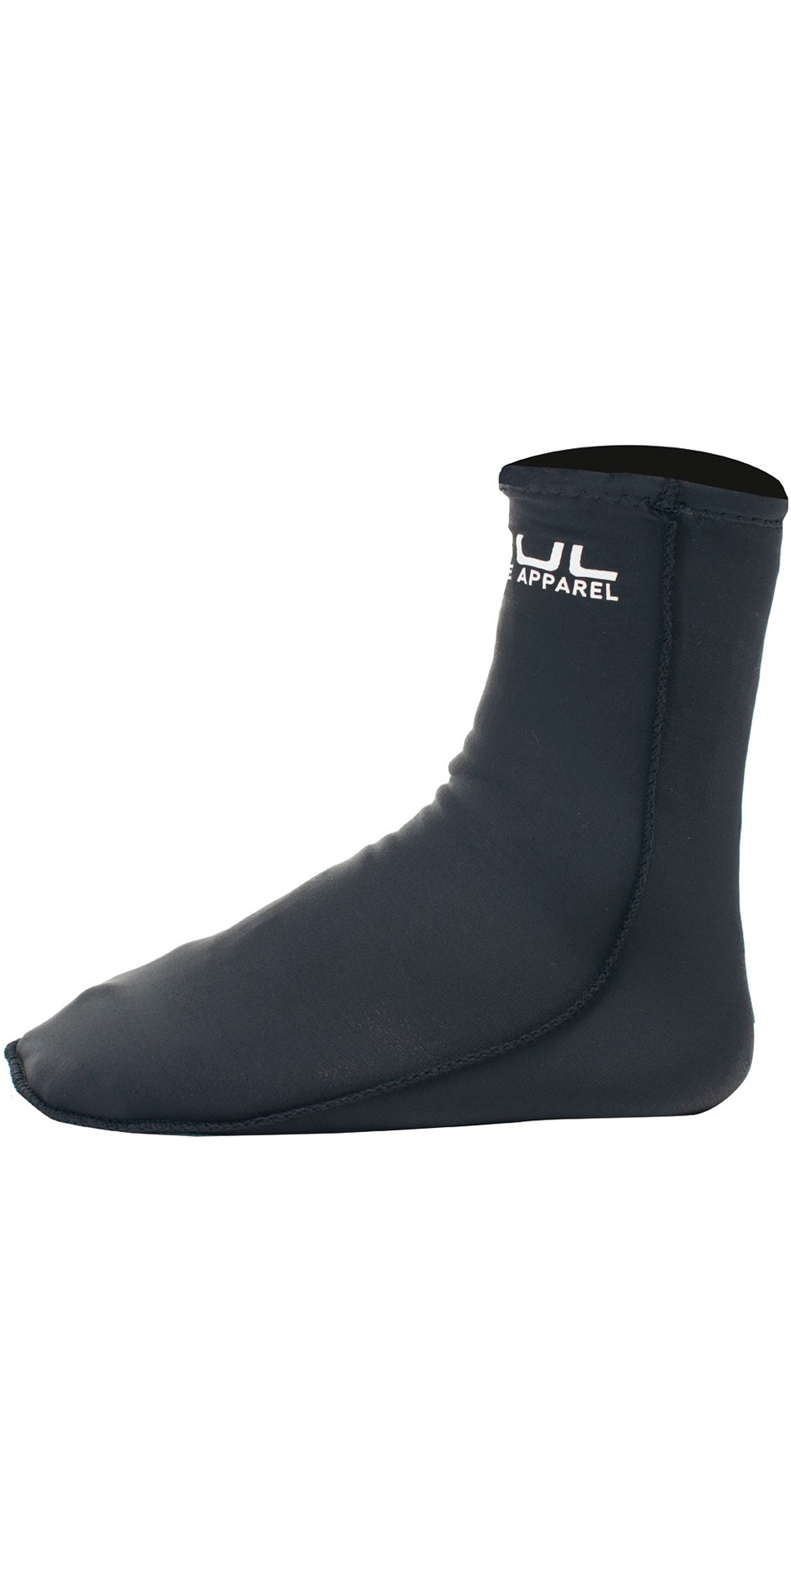 2018 Gul Stretch Drysuit Under / Over Extra Warmth Socks AC0064